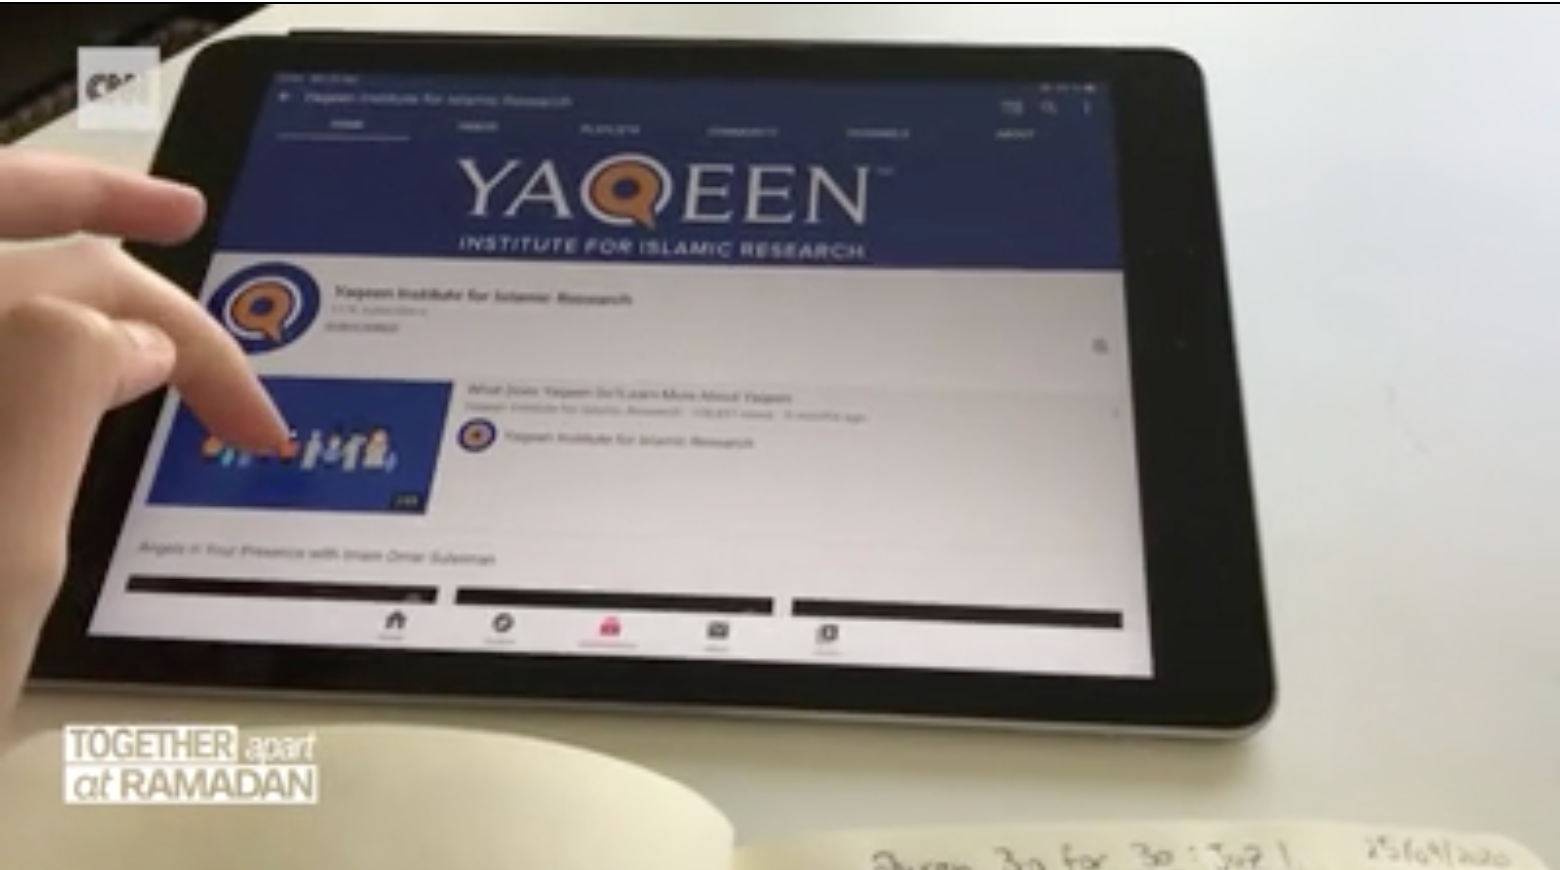 Yaqeen in the Spotlight